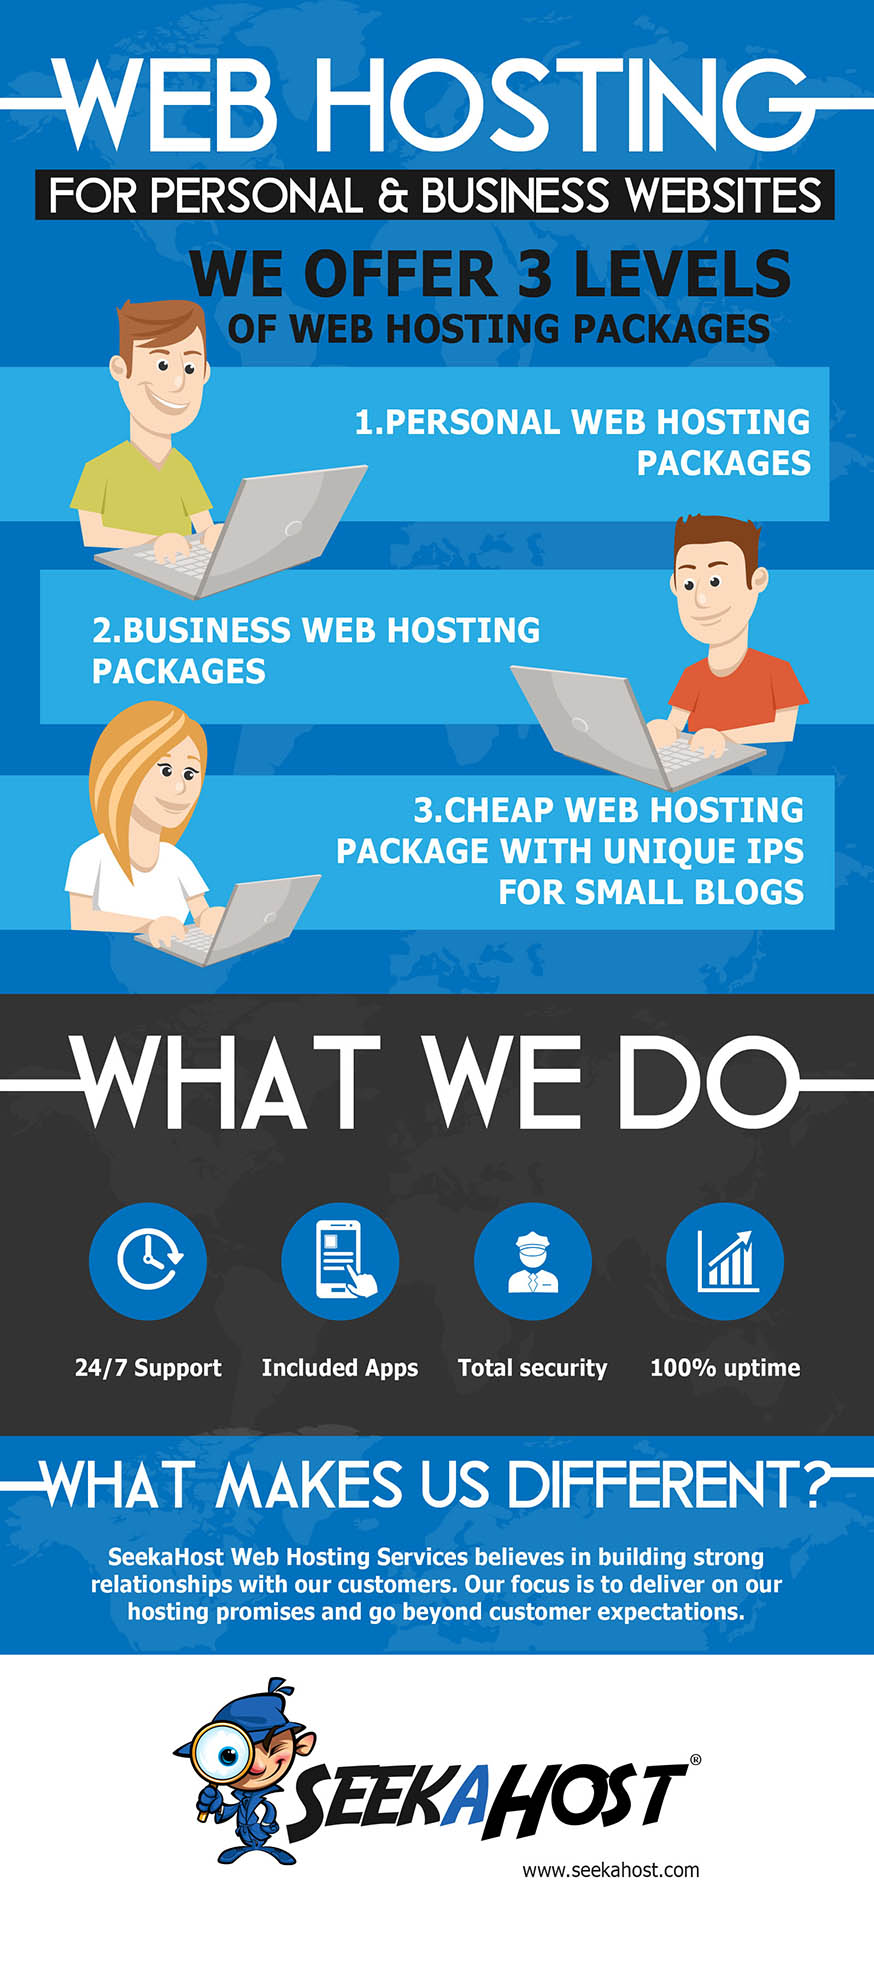 SeekaHost Web Hosting for Personal and Business Websites